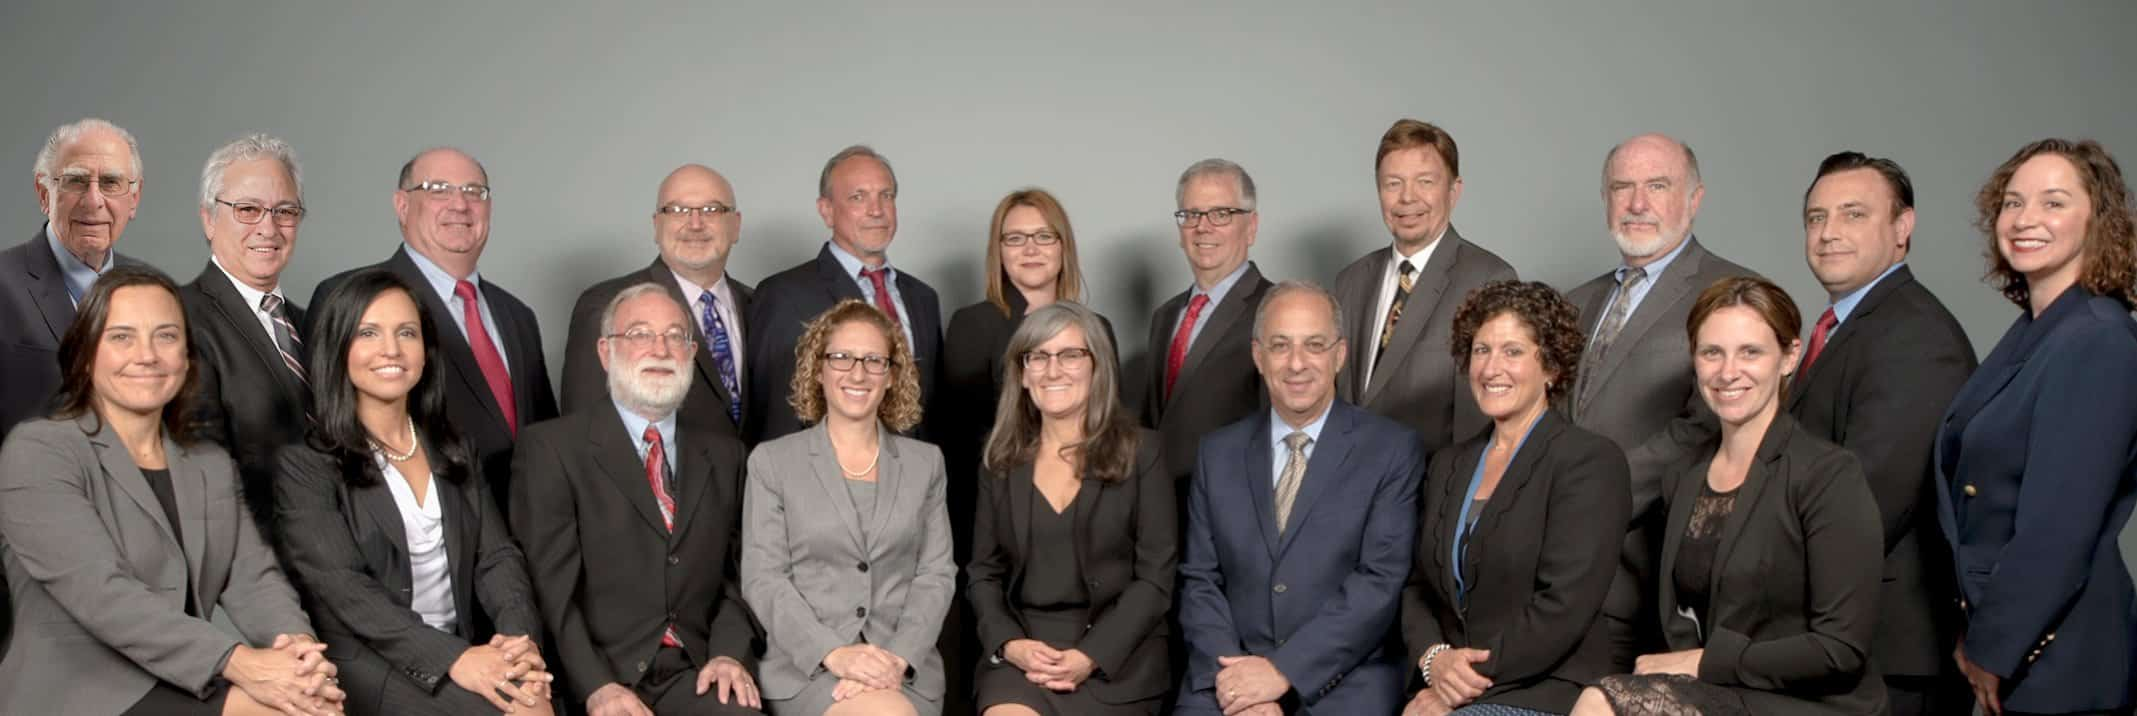 A photograph of the lawyers of Jacobowitz & Gubits, LLP in Walden, NY sitting and standing in two rows